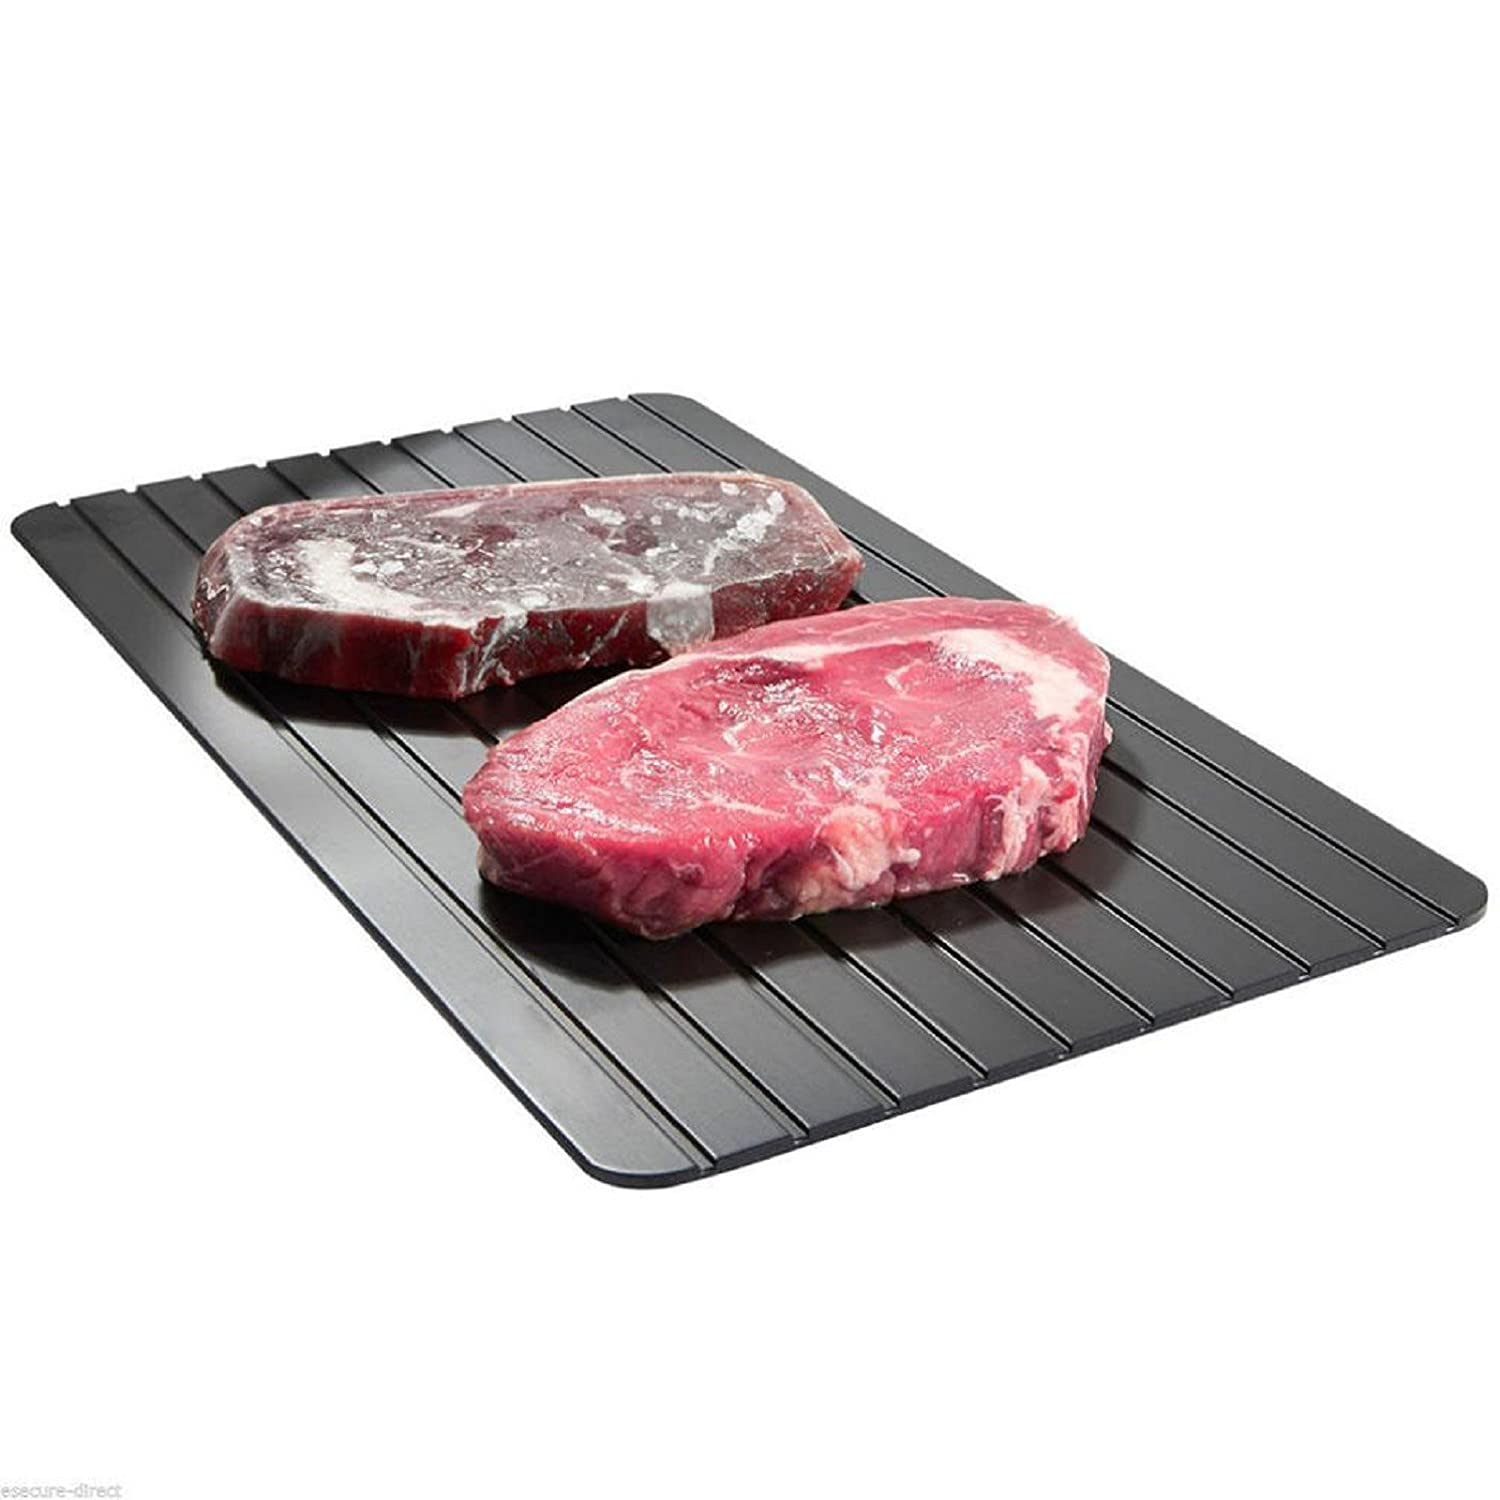 Owill Fast Defrosting Tray Magic Tray Kitchen Cooking Safest Way to Defrost Meat or Other Frozen Food (Black)